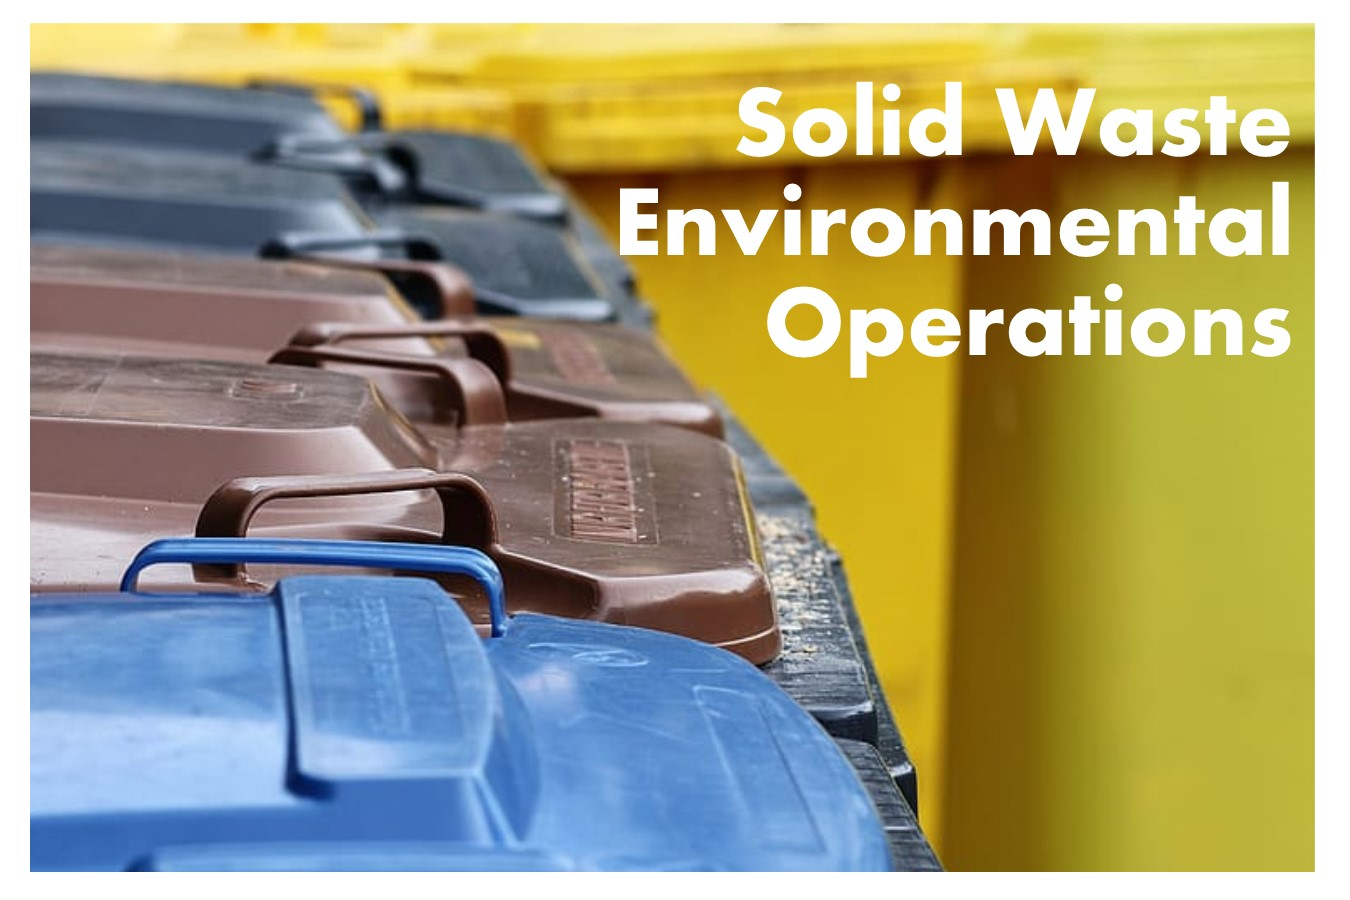 Solid Waste Environmental Operations